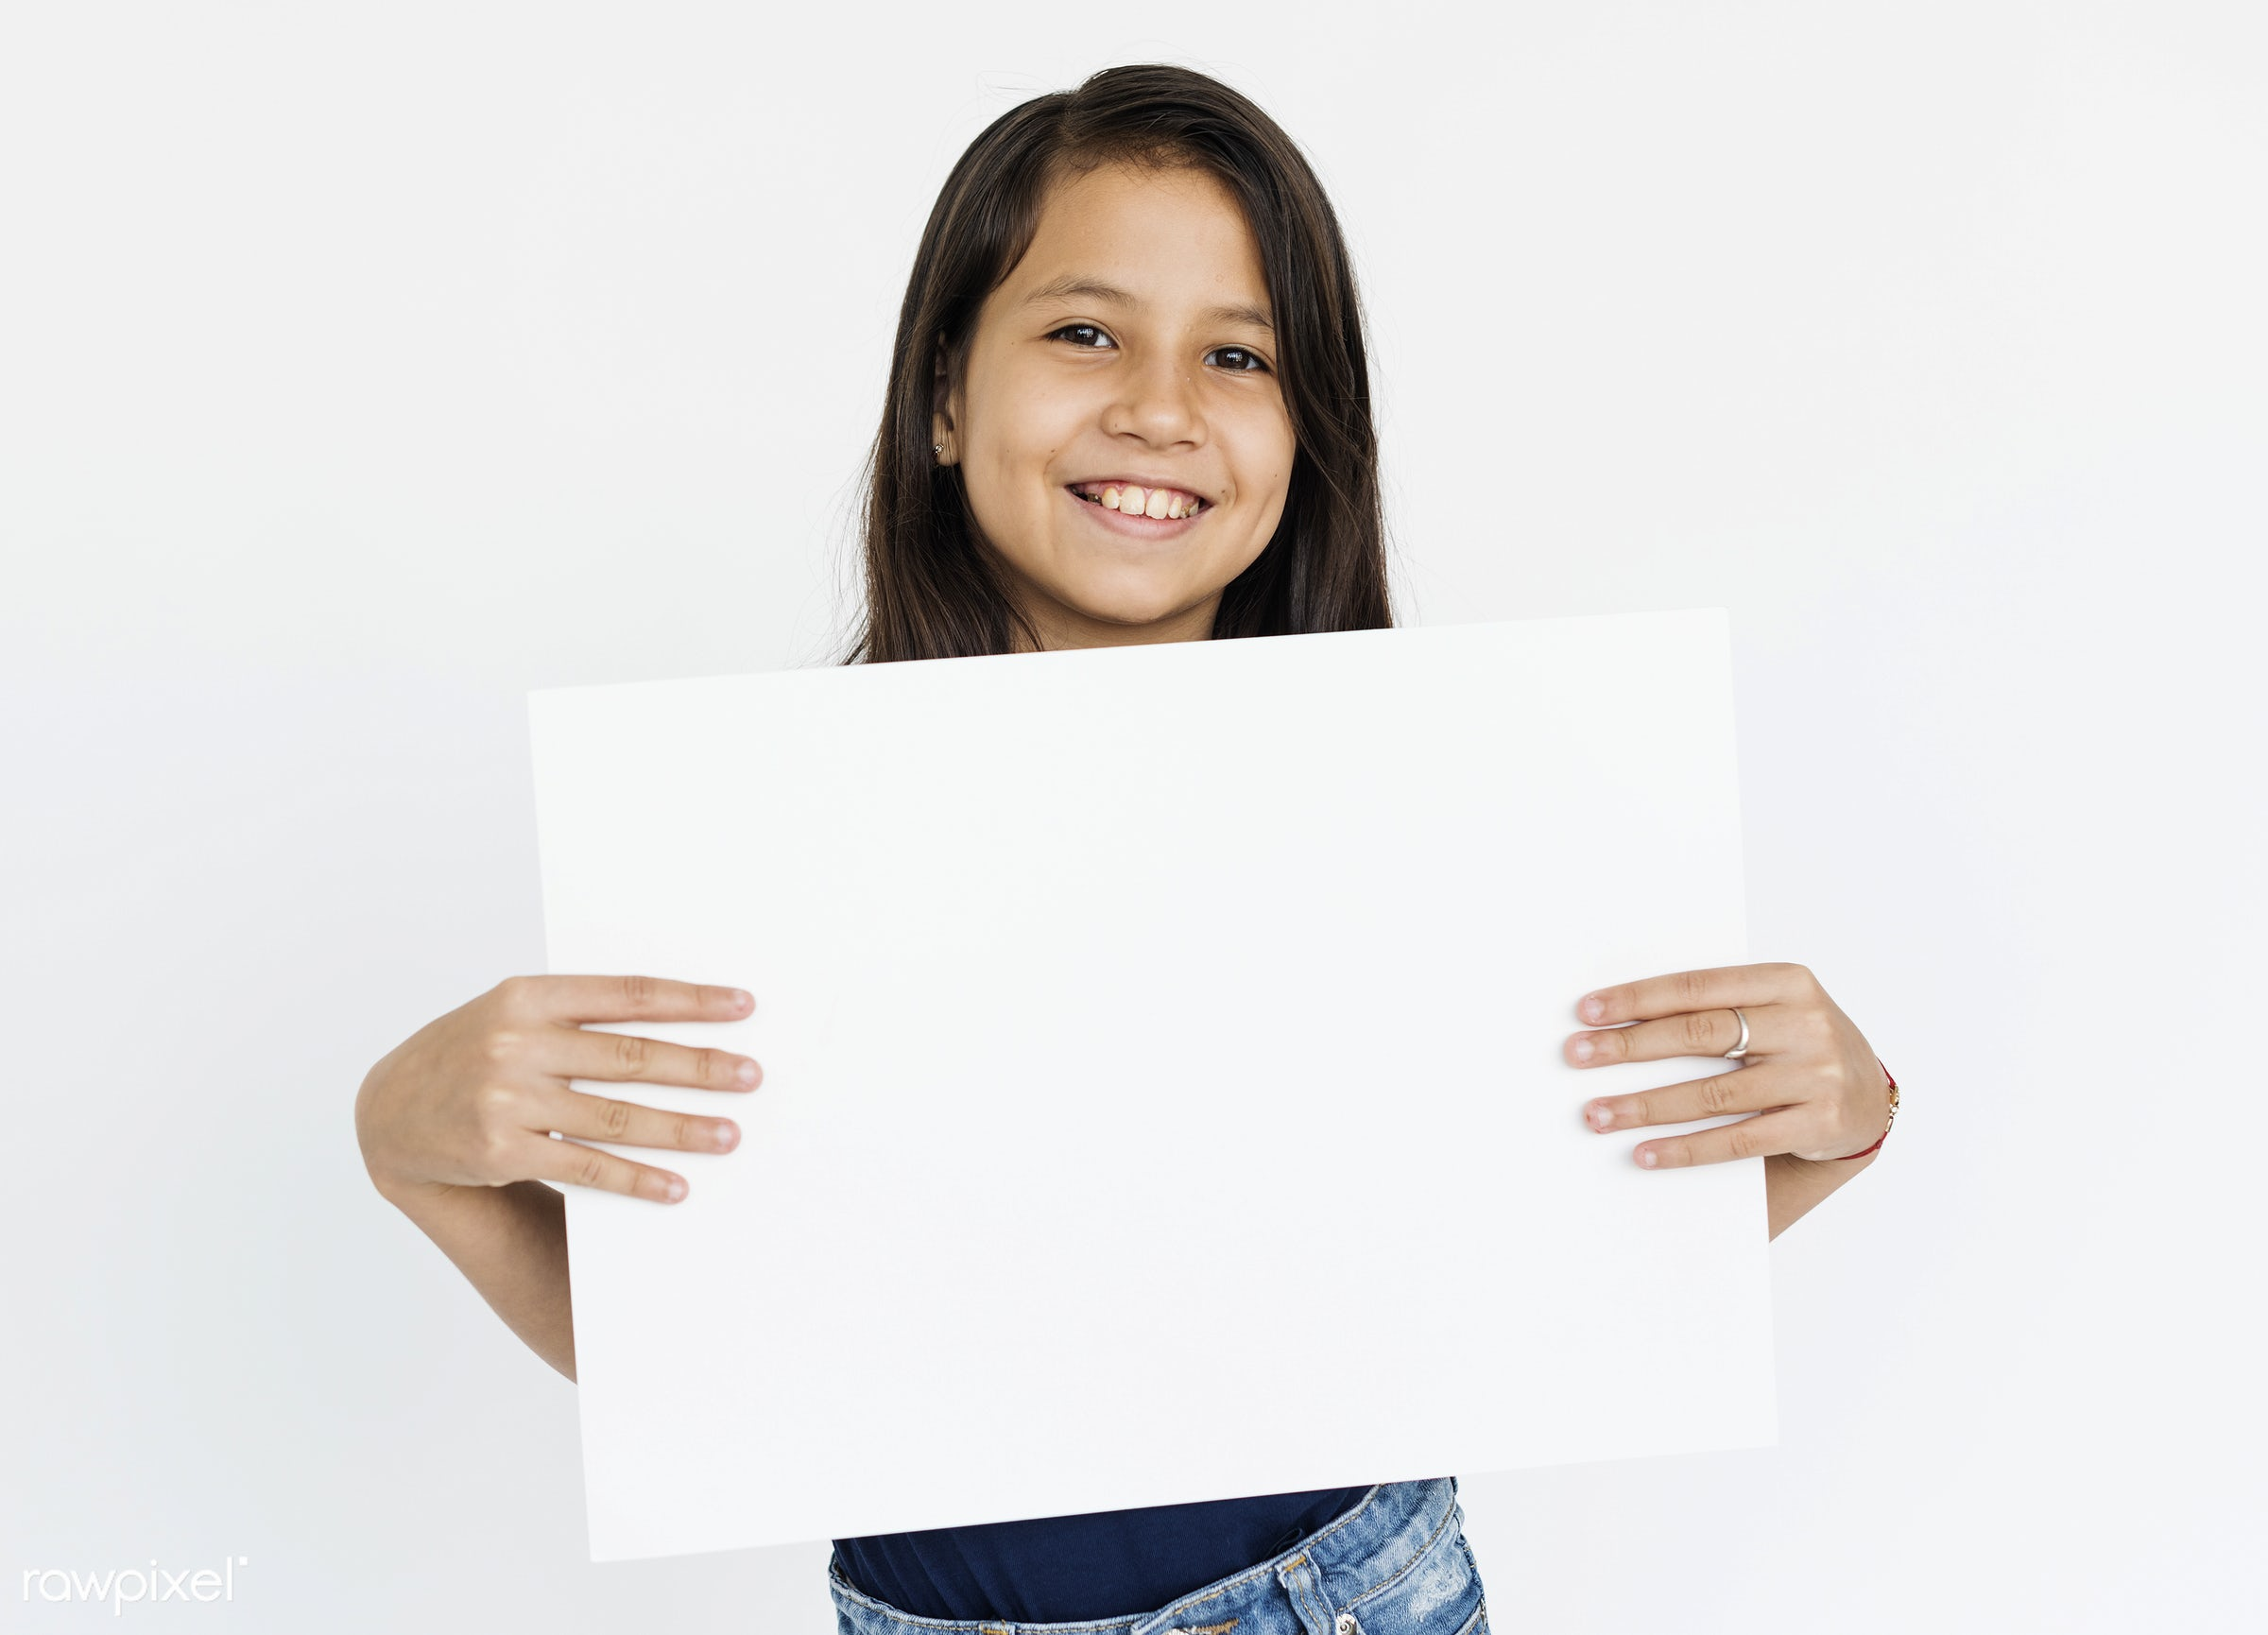 studio, expression, person, holding, show, people, displaying, placard, woman, empty, positive, smile, cheerful, smiling,...